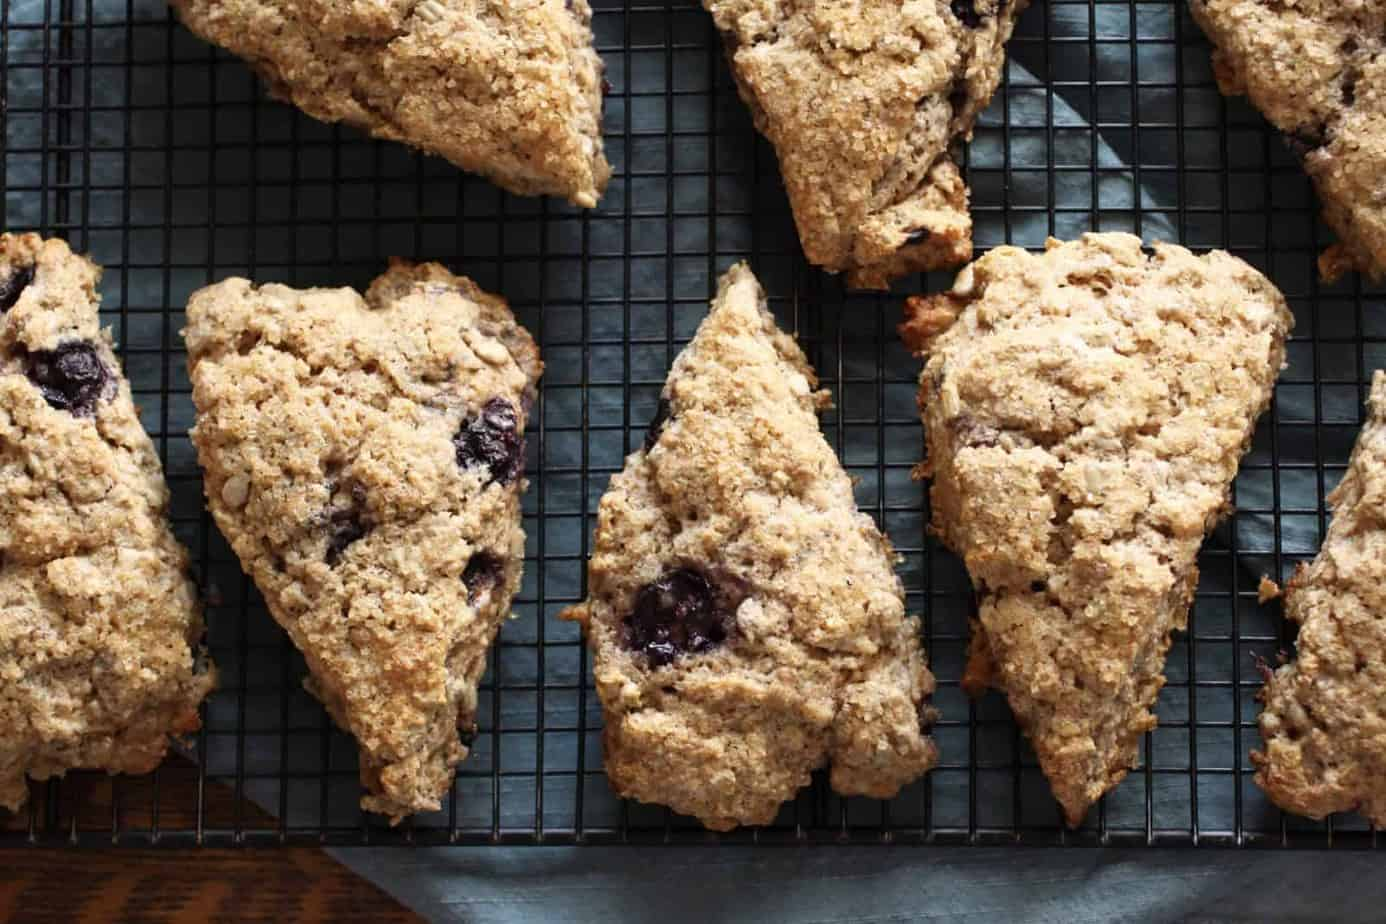 Blueberry Ginger Spelt Scones cooling on a rack